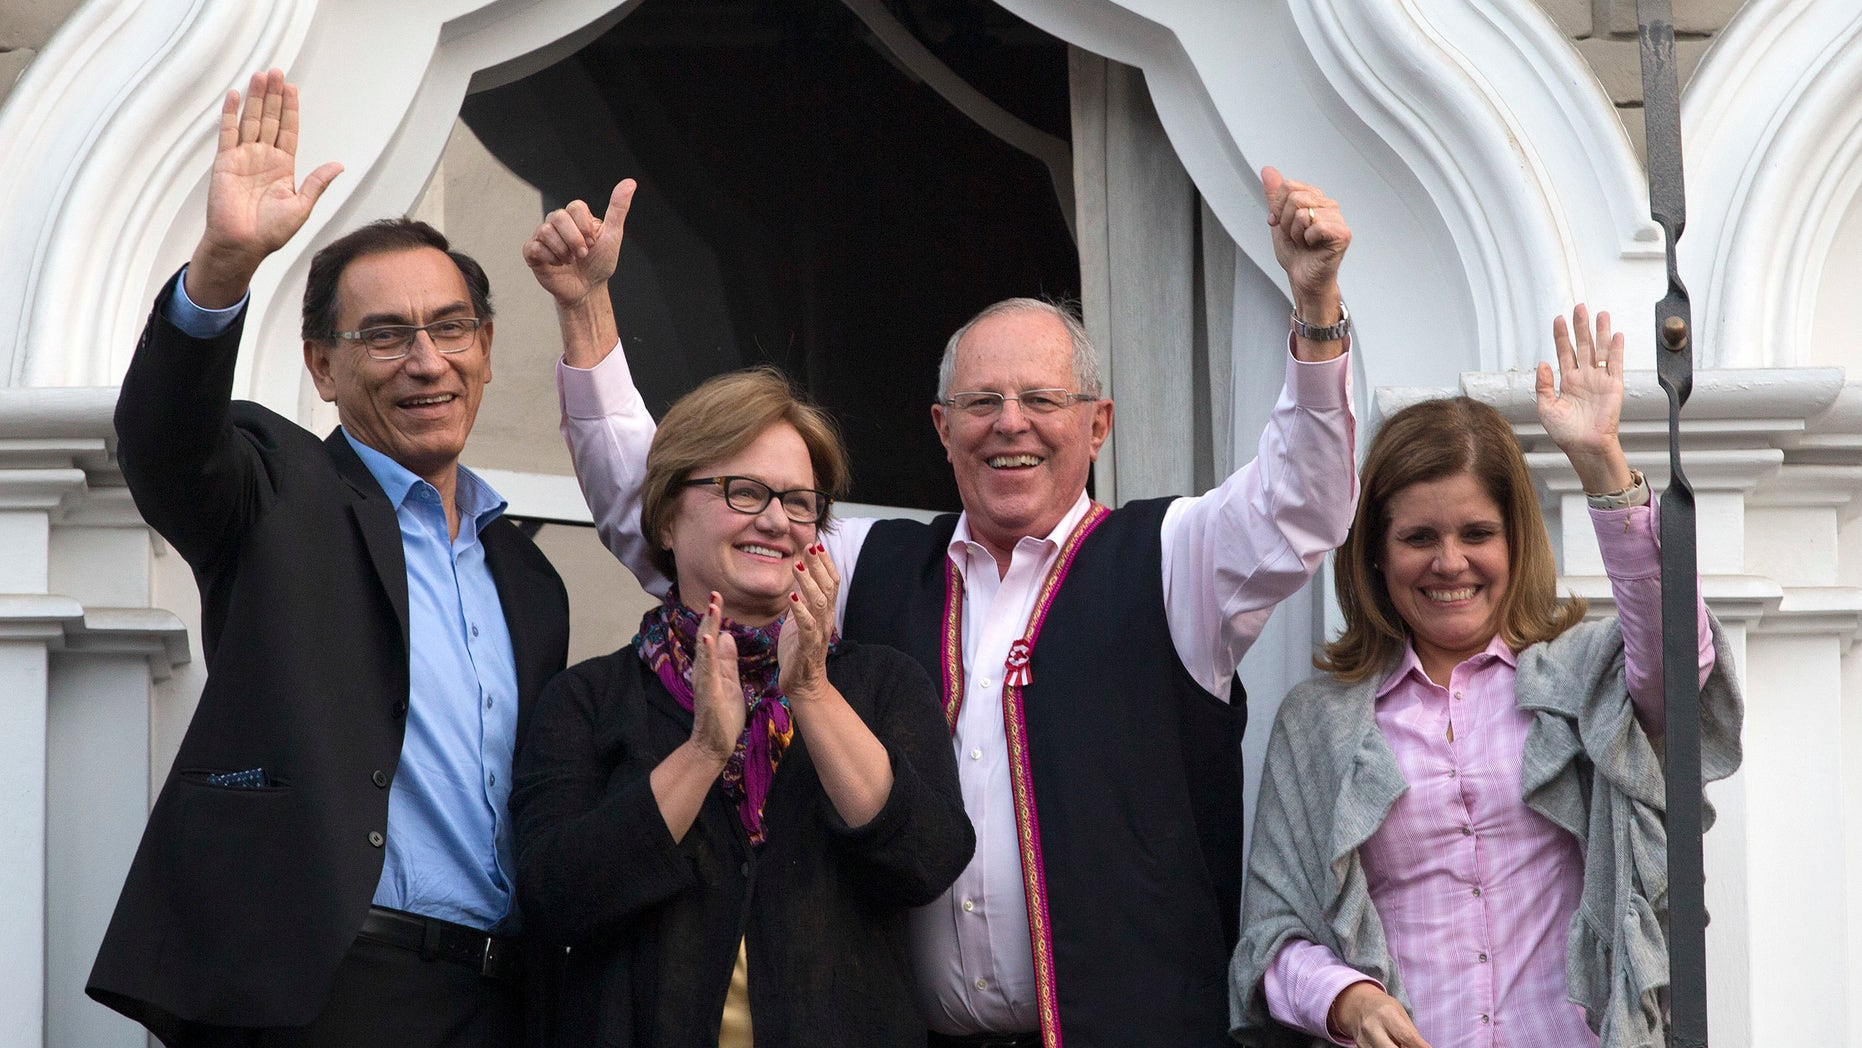 Pedro Pablo Kuczynski and wife Nancy Lange, flanked by his running mates Mercedes Araoz and Martin Vizcarra.